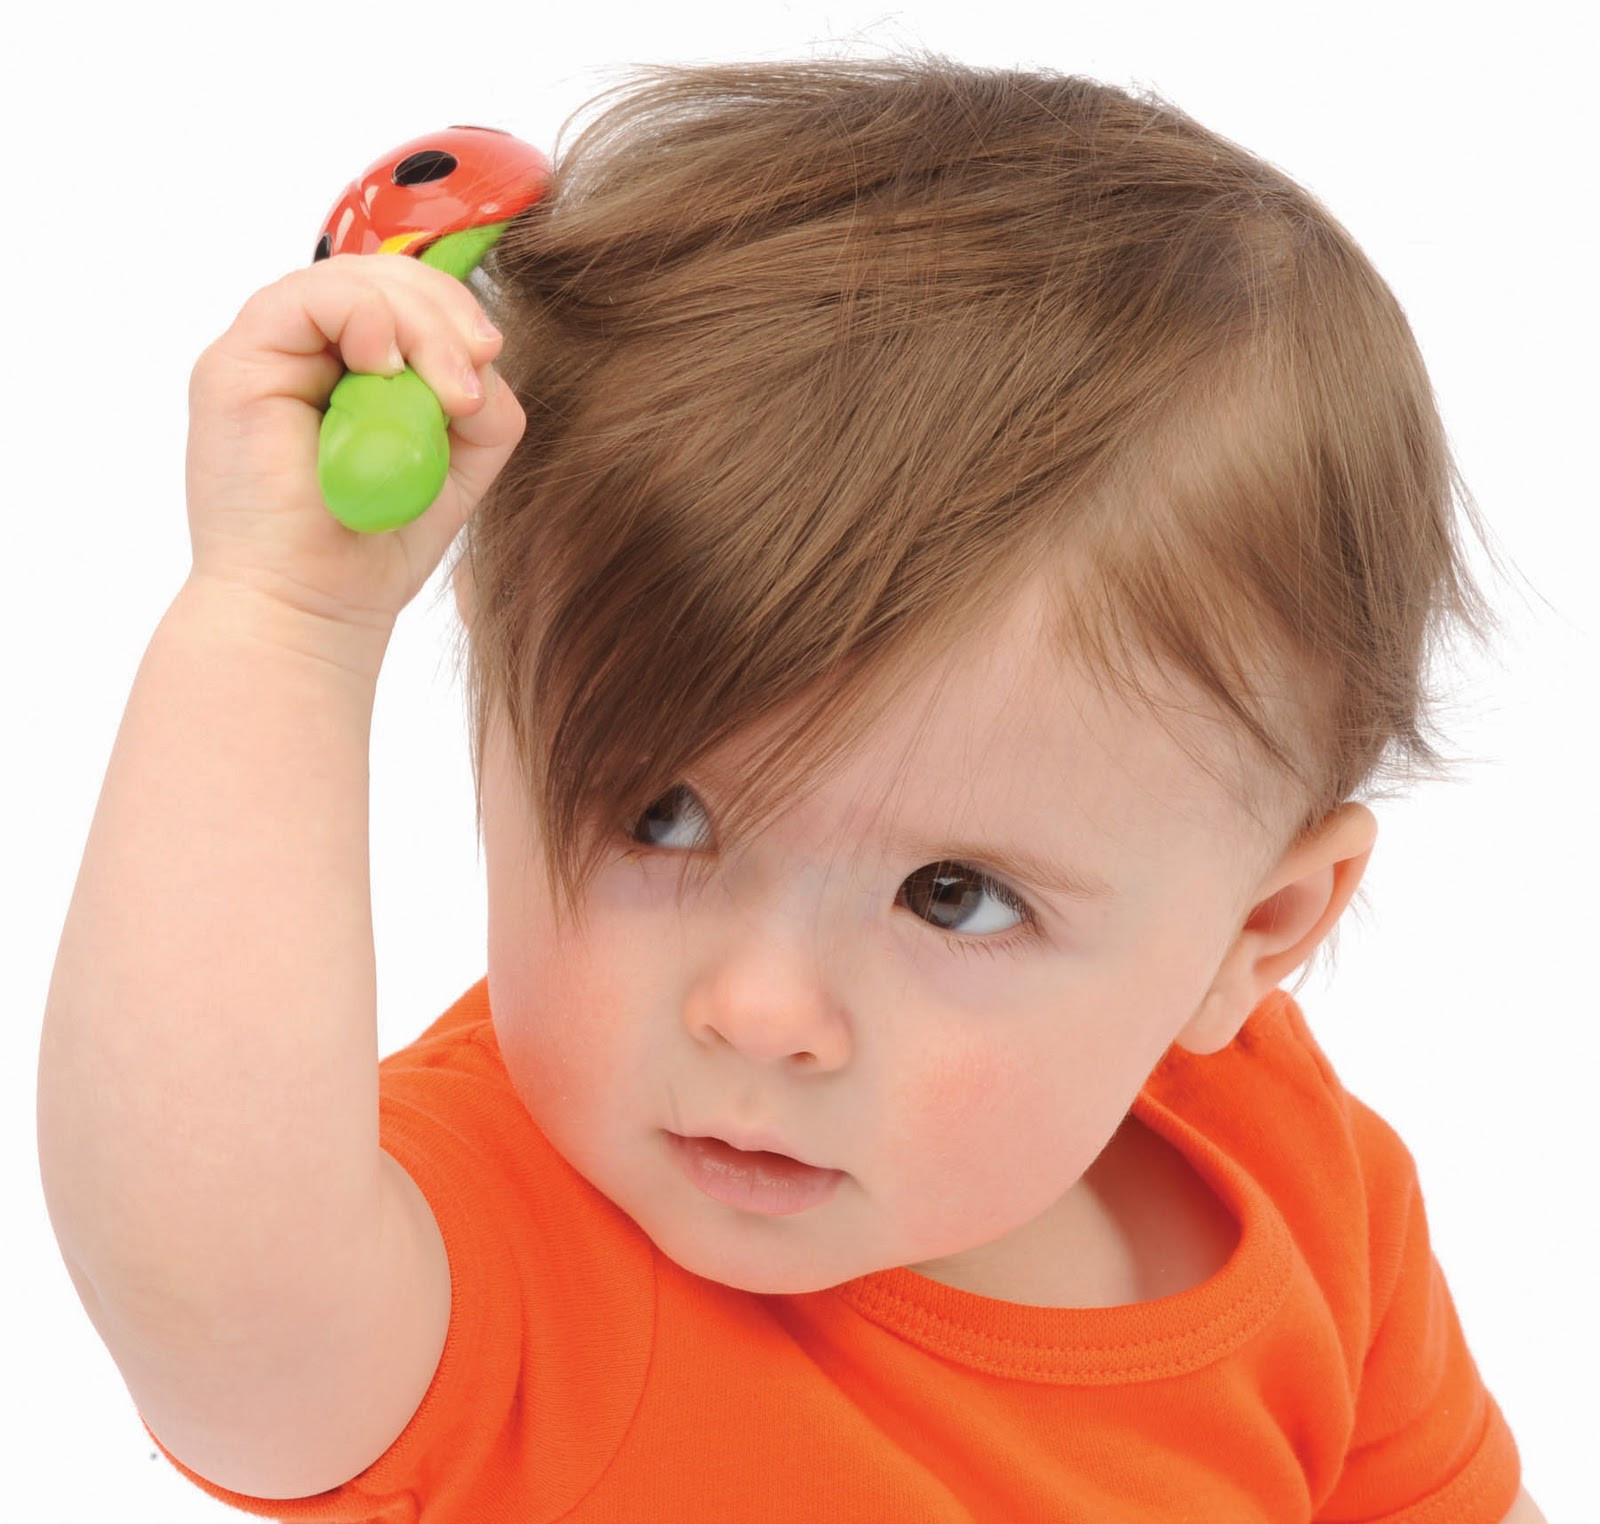 Hair Care For Kids  Hair care for baby